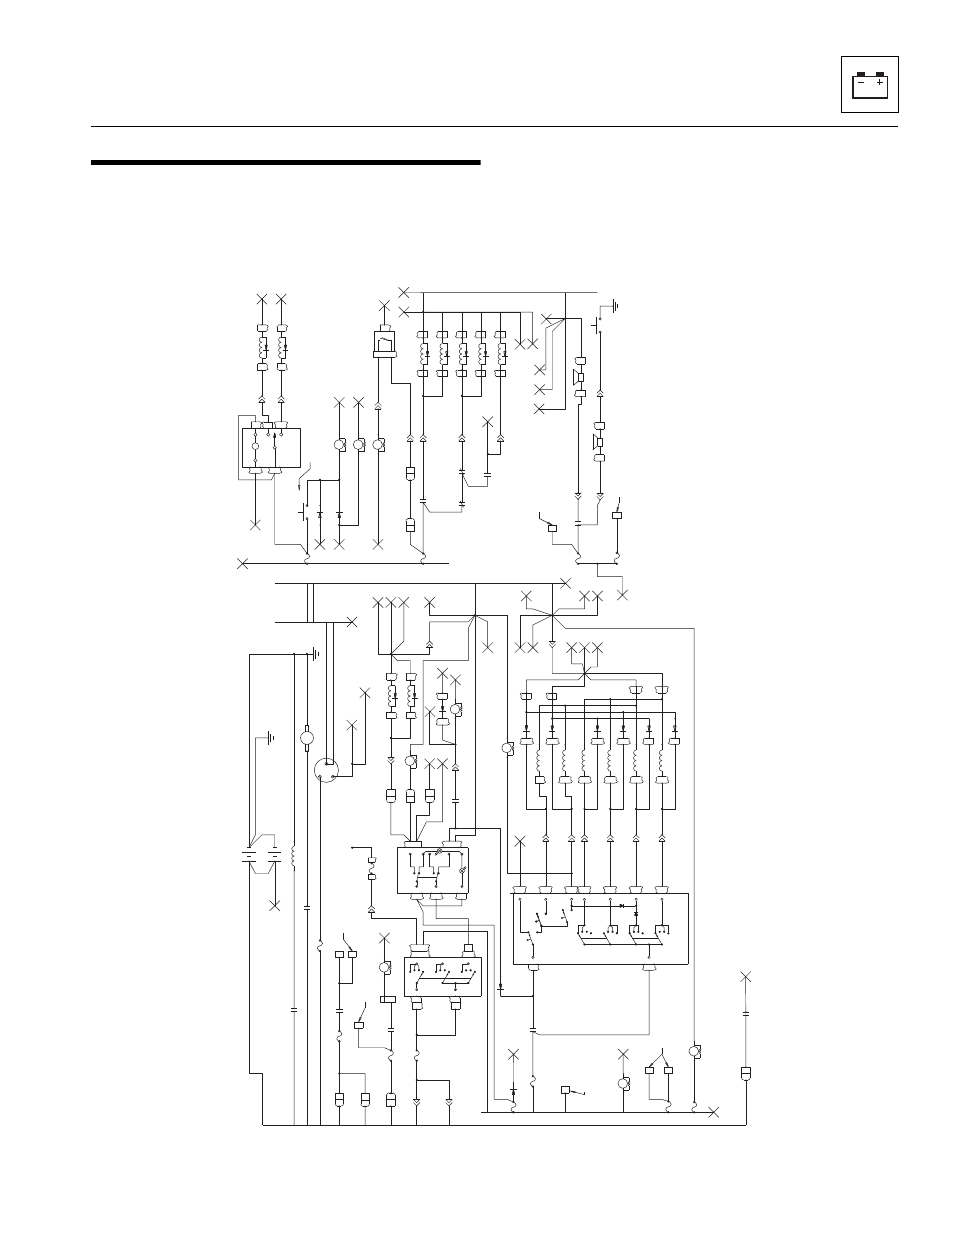 8042 Skytrak Wiring Diagram Case 586g Yale Glp060 5 Electrical System Schematics 1 6036 6042 Schematic On